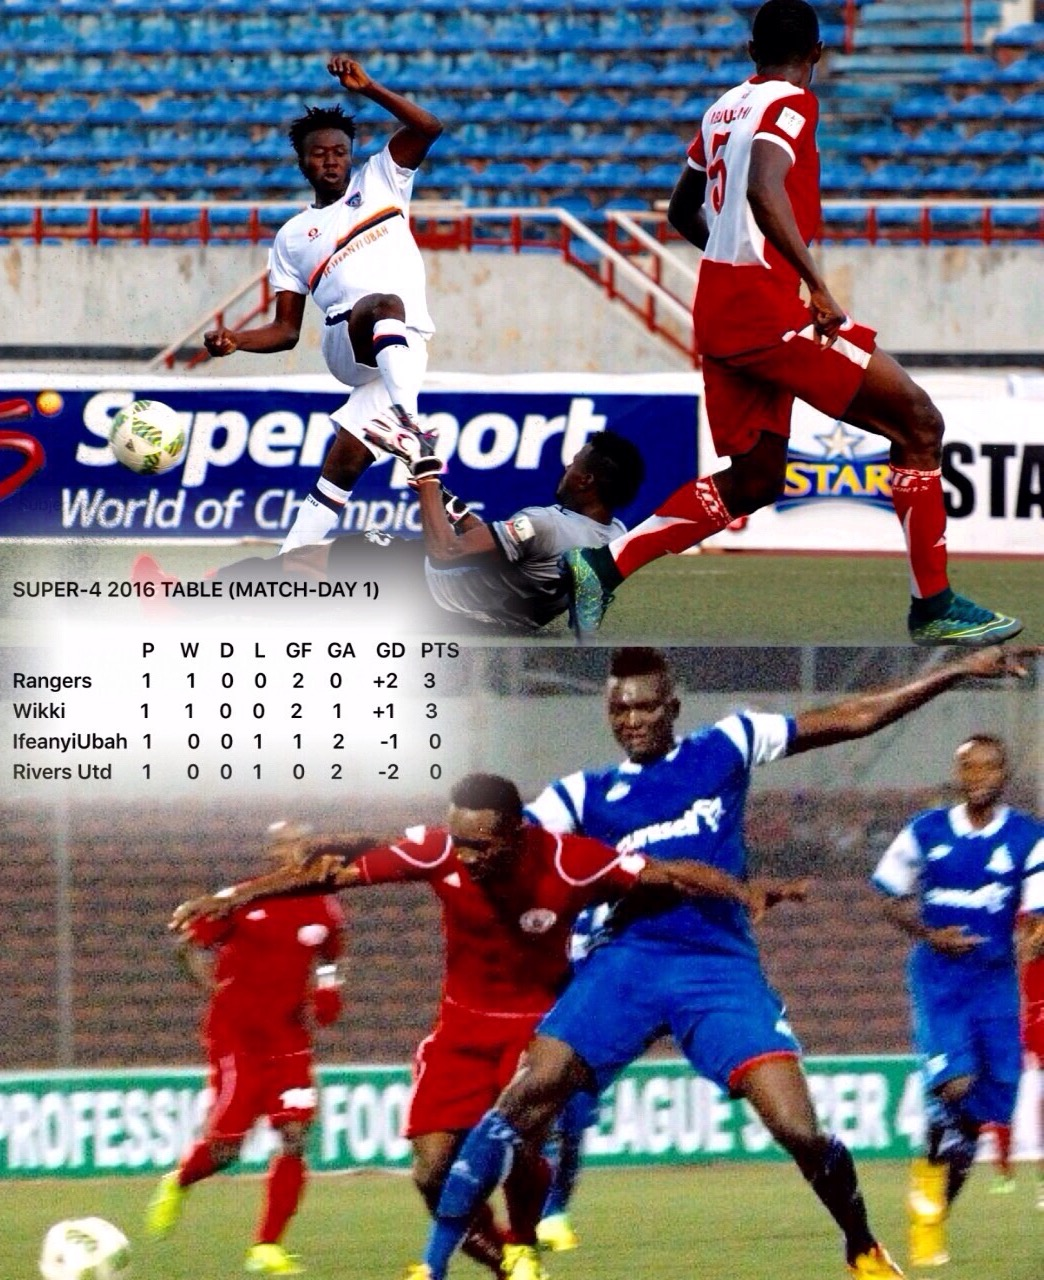 Super-4: Rangers, Wikki Battle For Top Spot; Rivers, Ifeanyiubah Go For Broke